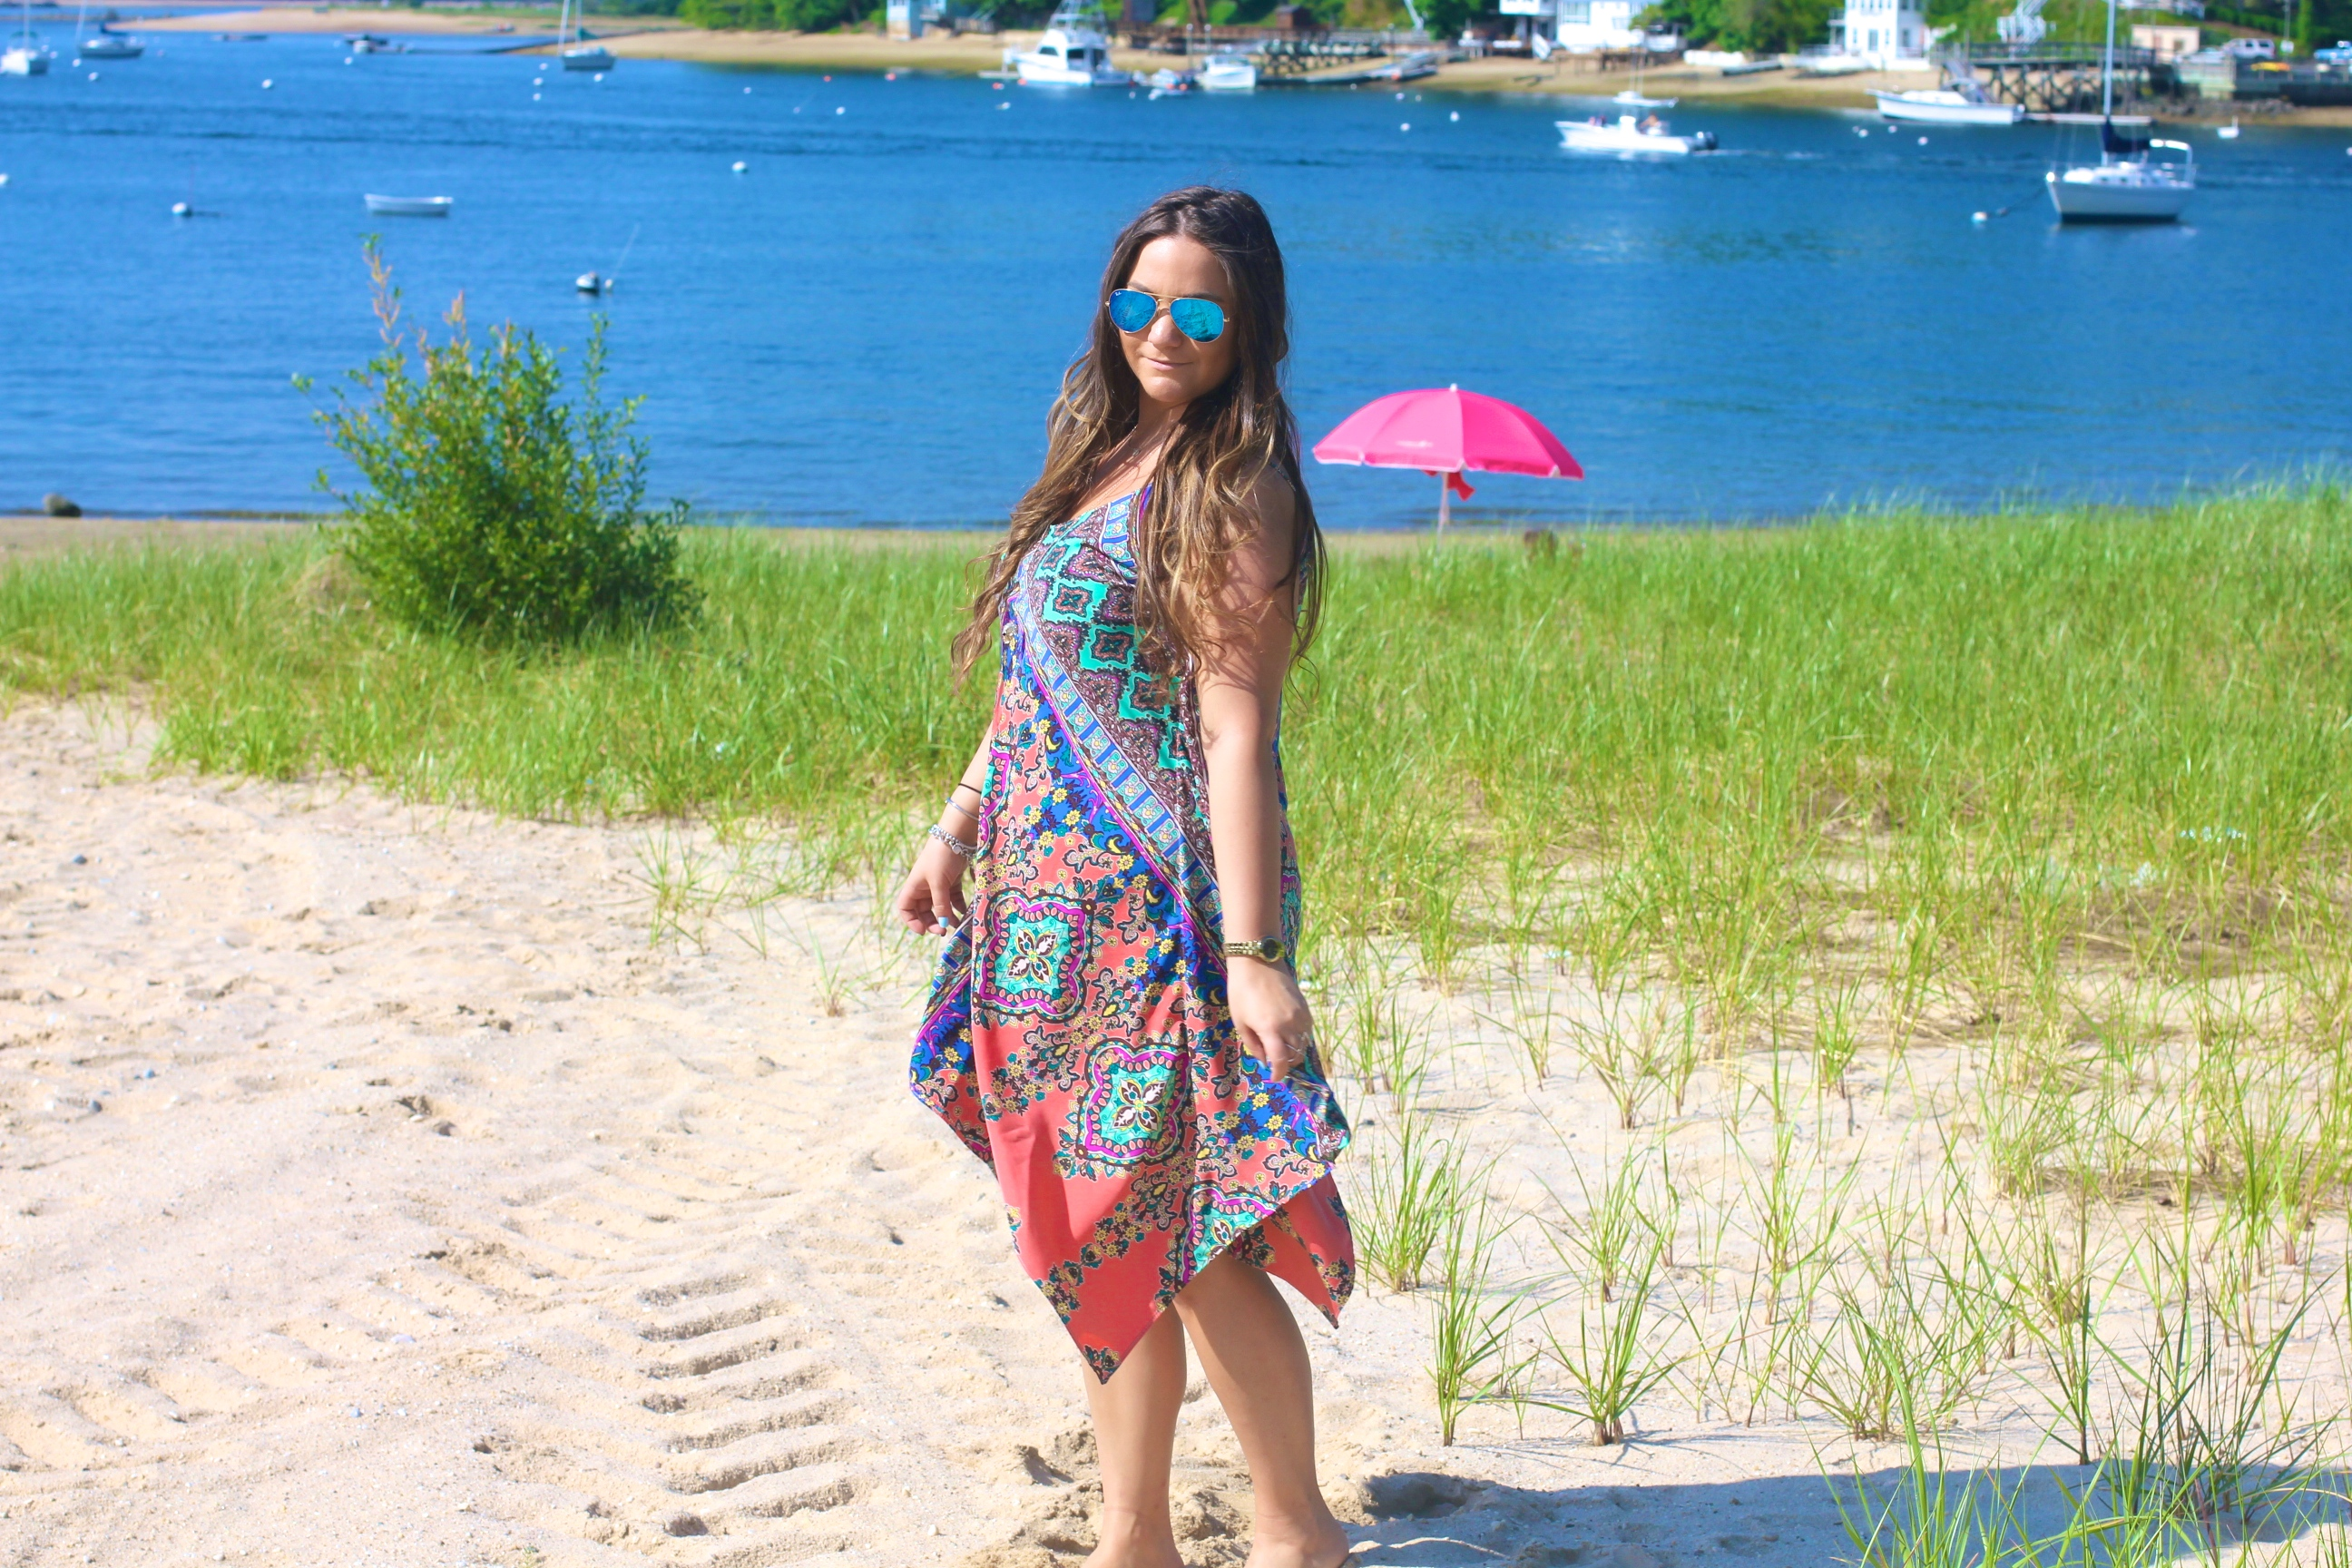 missyonmadison, melissa tierney, fashion blogger, ideel, handkerchief dress, printed handkerchief dress, ideel handkerchief dress, summer style, long island, beach, beach day, what to wear to the beach, blue ray bans, mirrored aviators, blue mirrored sunglasses, tory burch, tory burch thora thong, thora sandals, tory sandals, huntington, long island beaches,